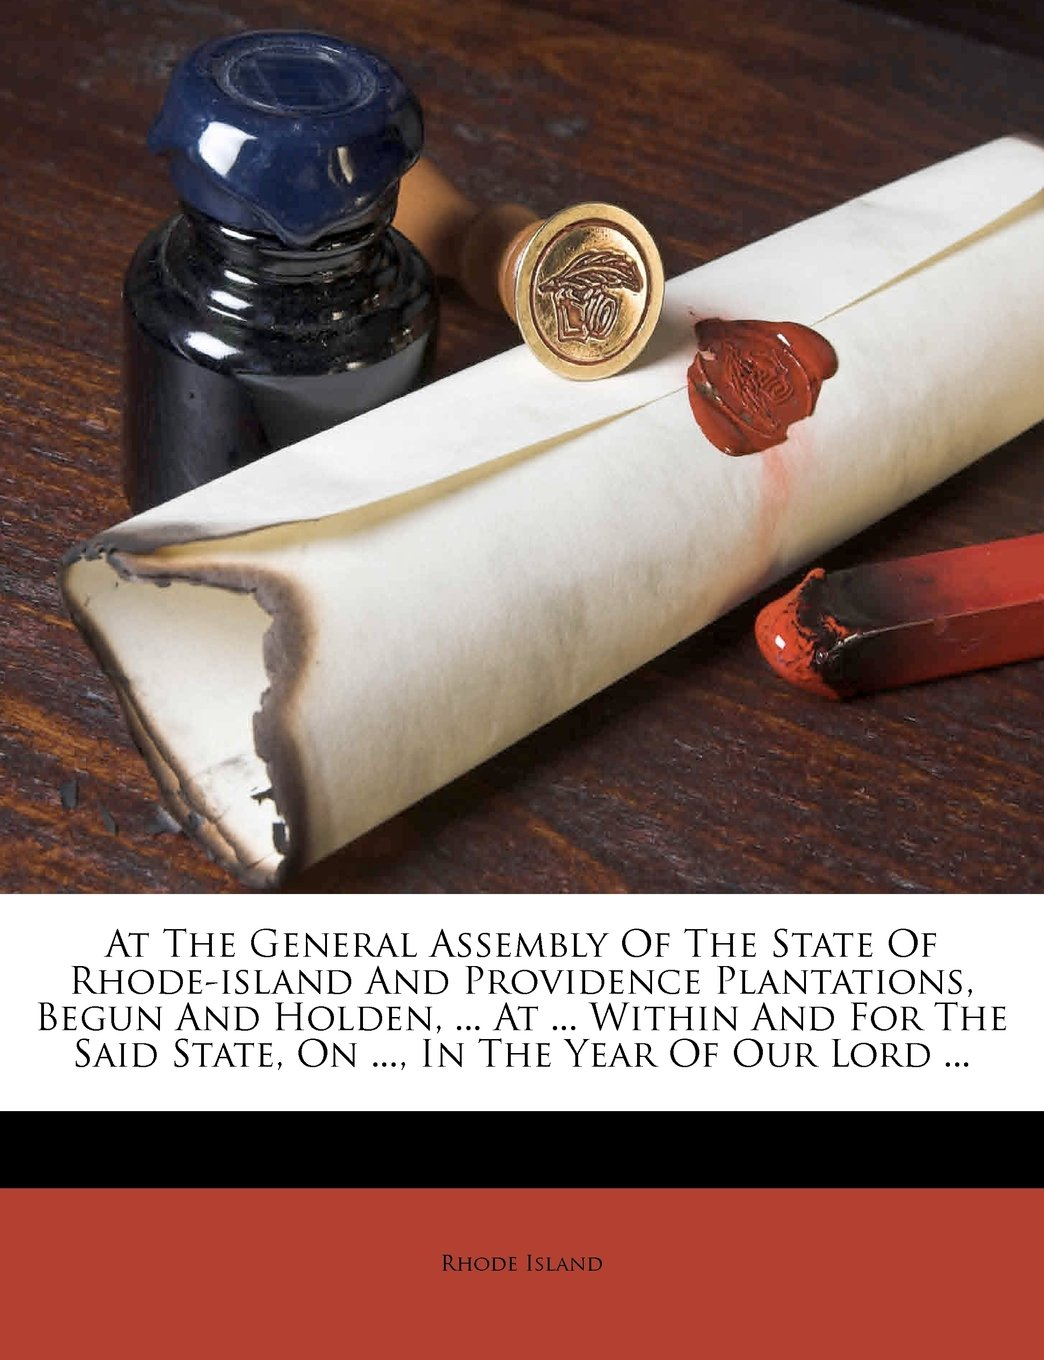 At The General Assembly Of The State Of Rhode-island And Providence Plantations, Begun And Holden, ... At ... Within And For The Said State, On ..., In The Year Of Our Lord ... PDF